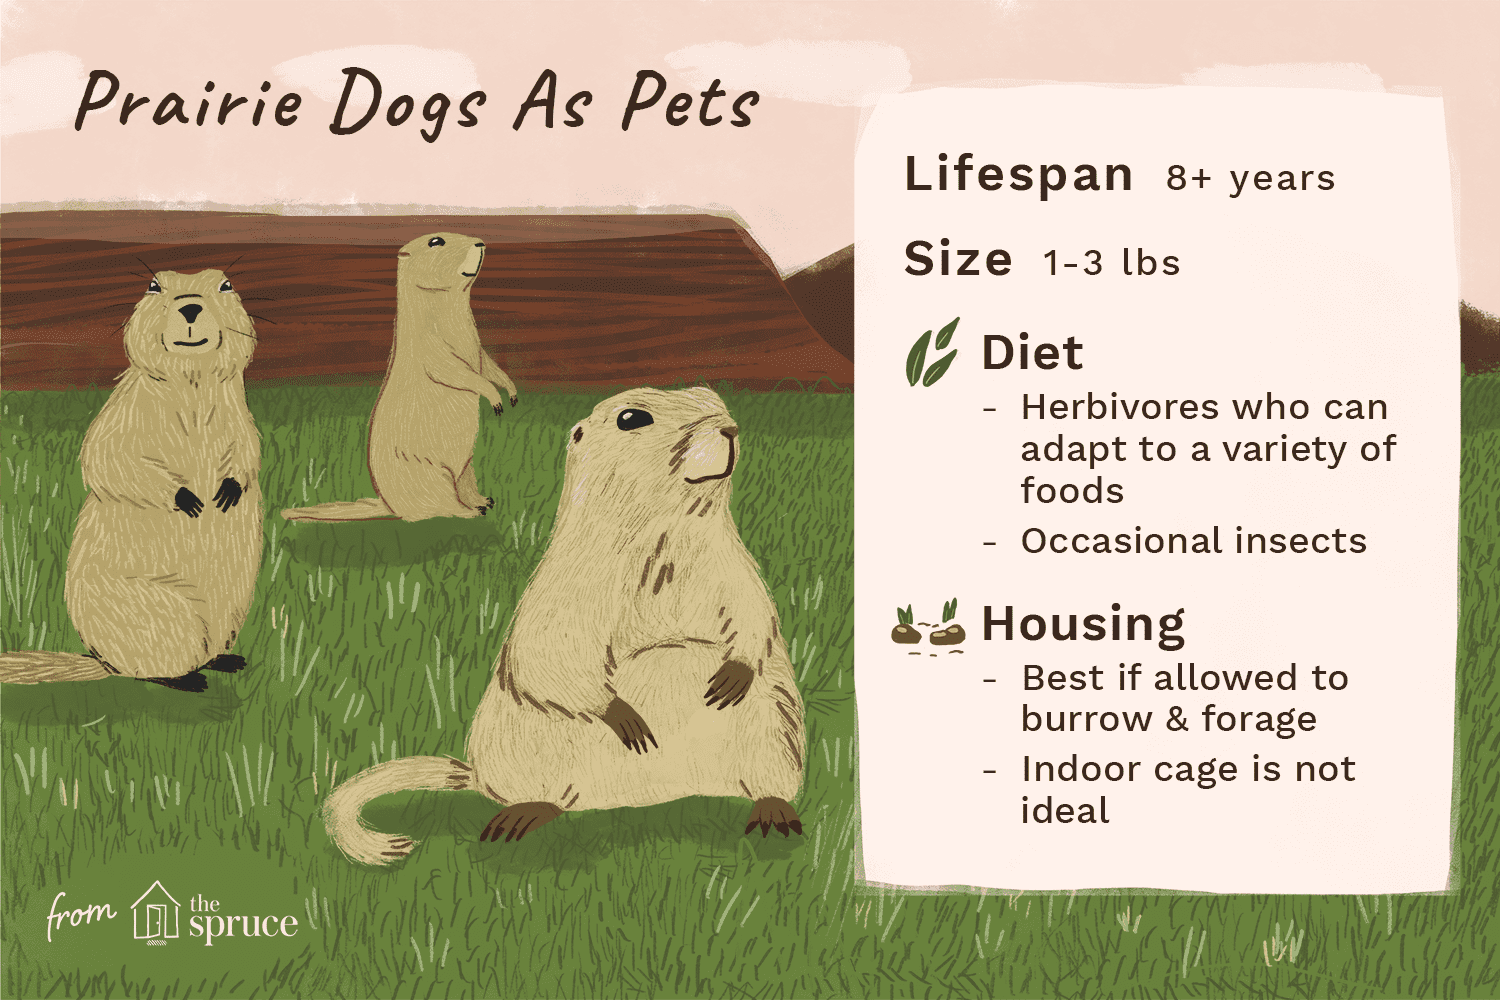 Prairie dogs as pets illustration